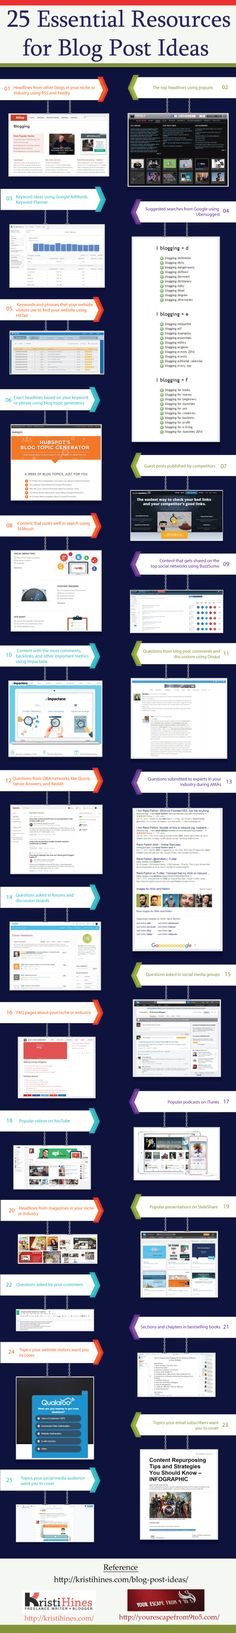 What Are 25 Techniques For Discovering New Ideas For Your Next Blog Post? #infographic